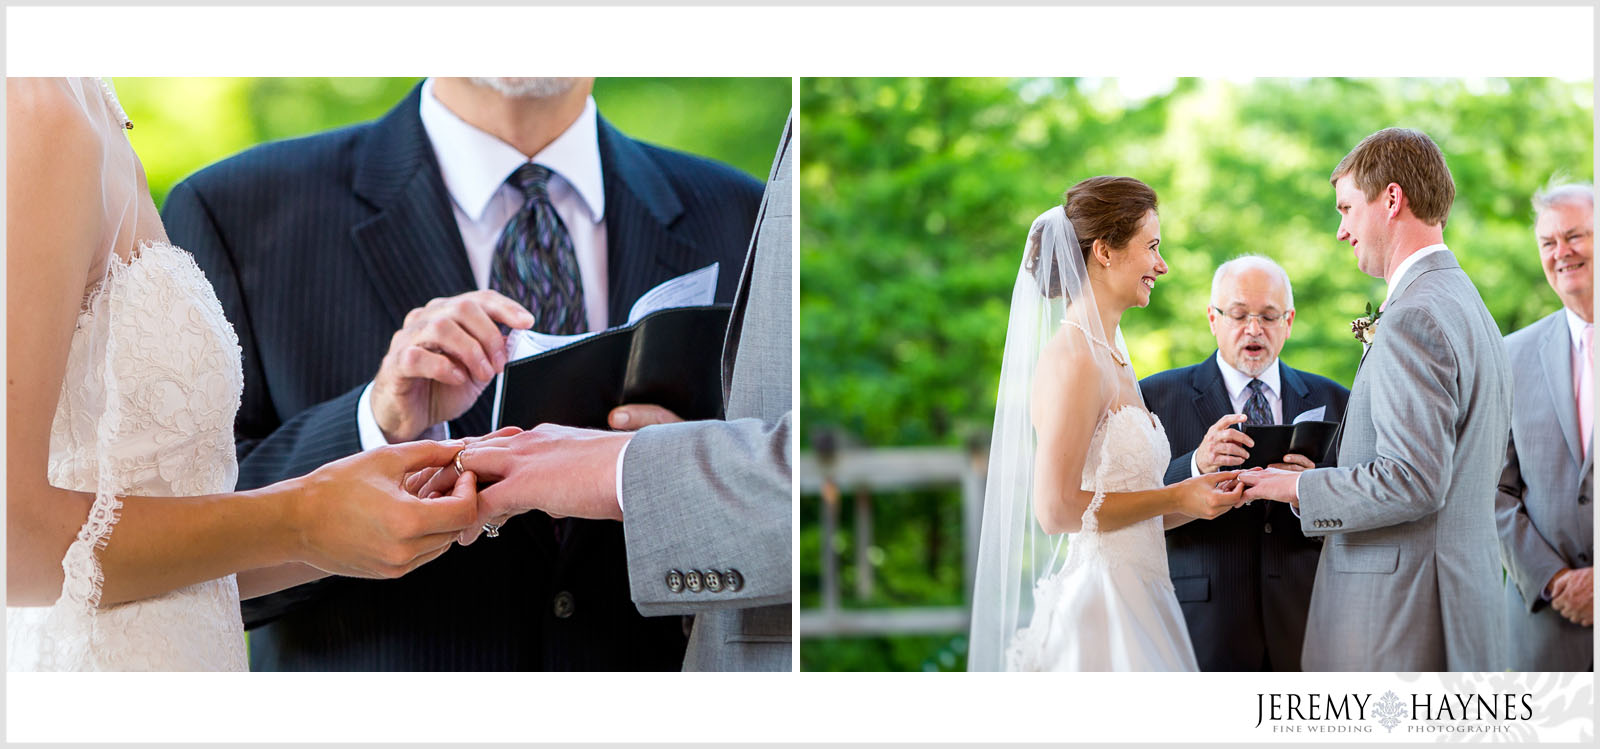 26 Indianapolis Art Center Indianapolis, IN Wedding Couple Ceremony Pictures.jpg